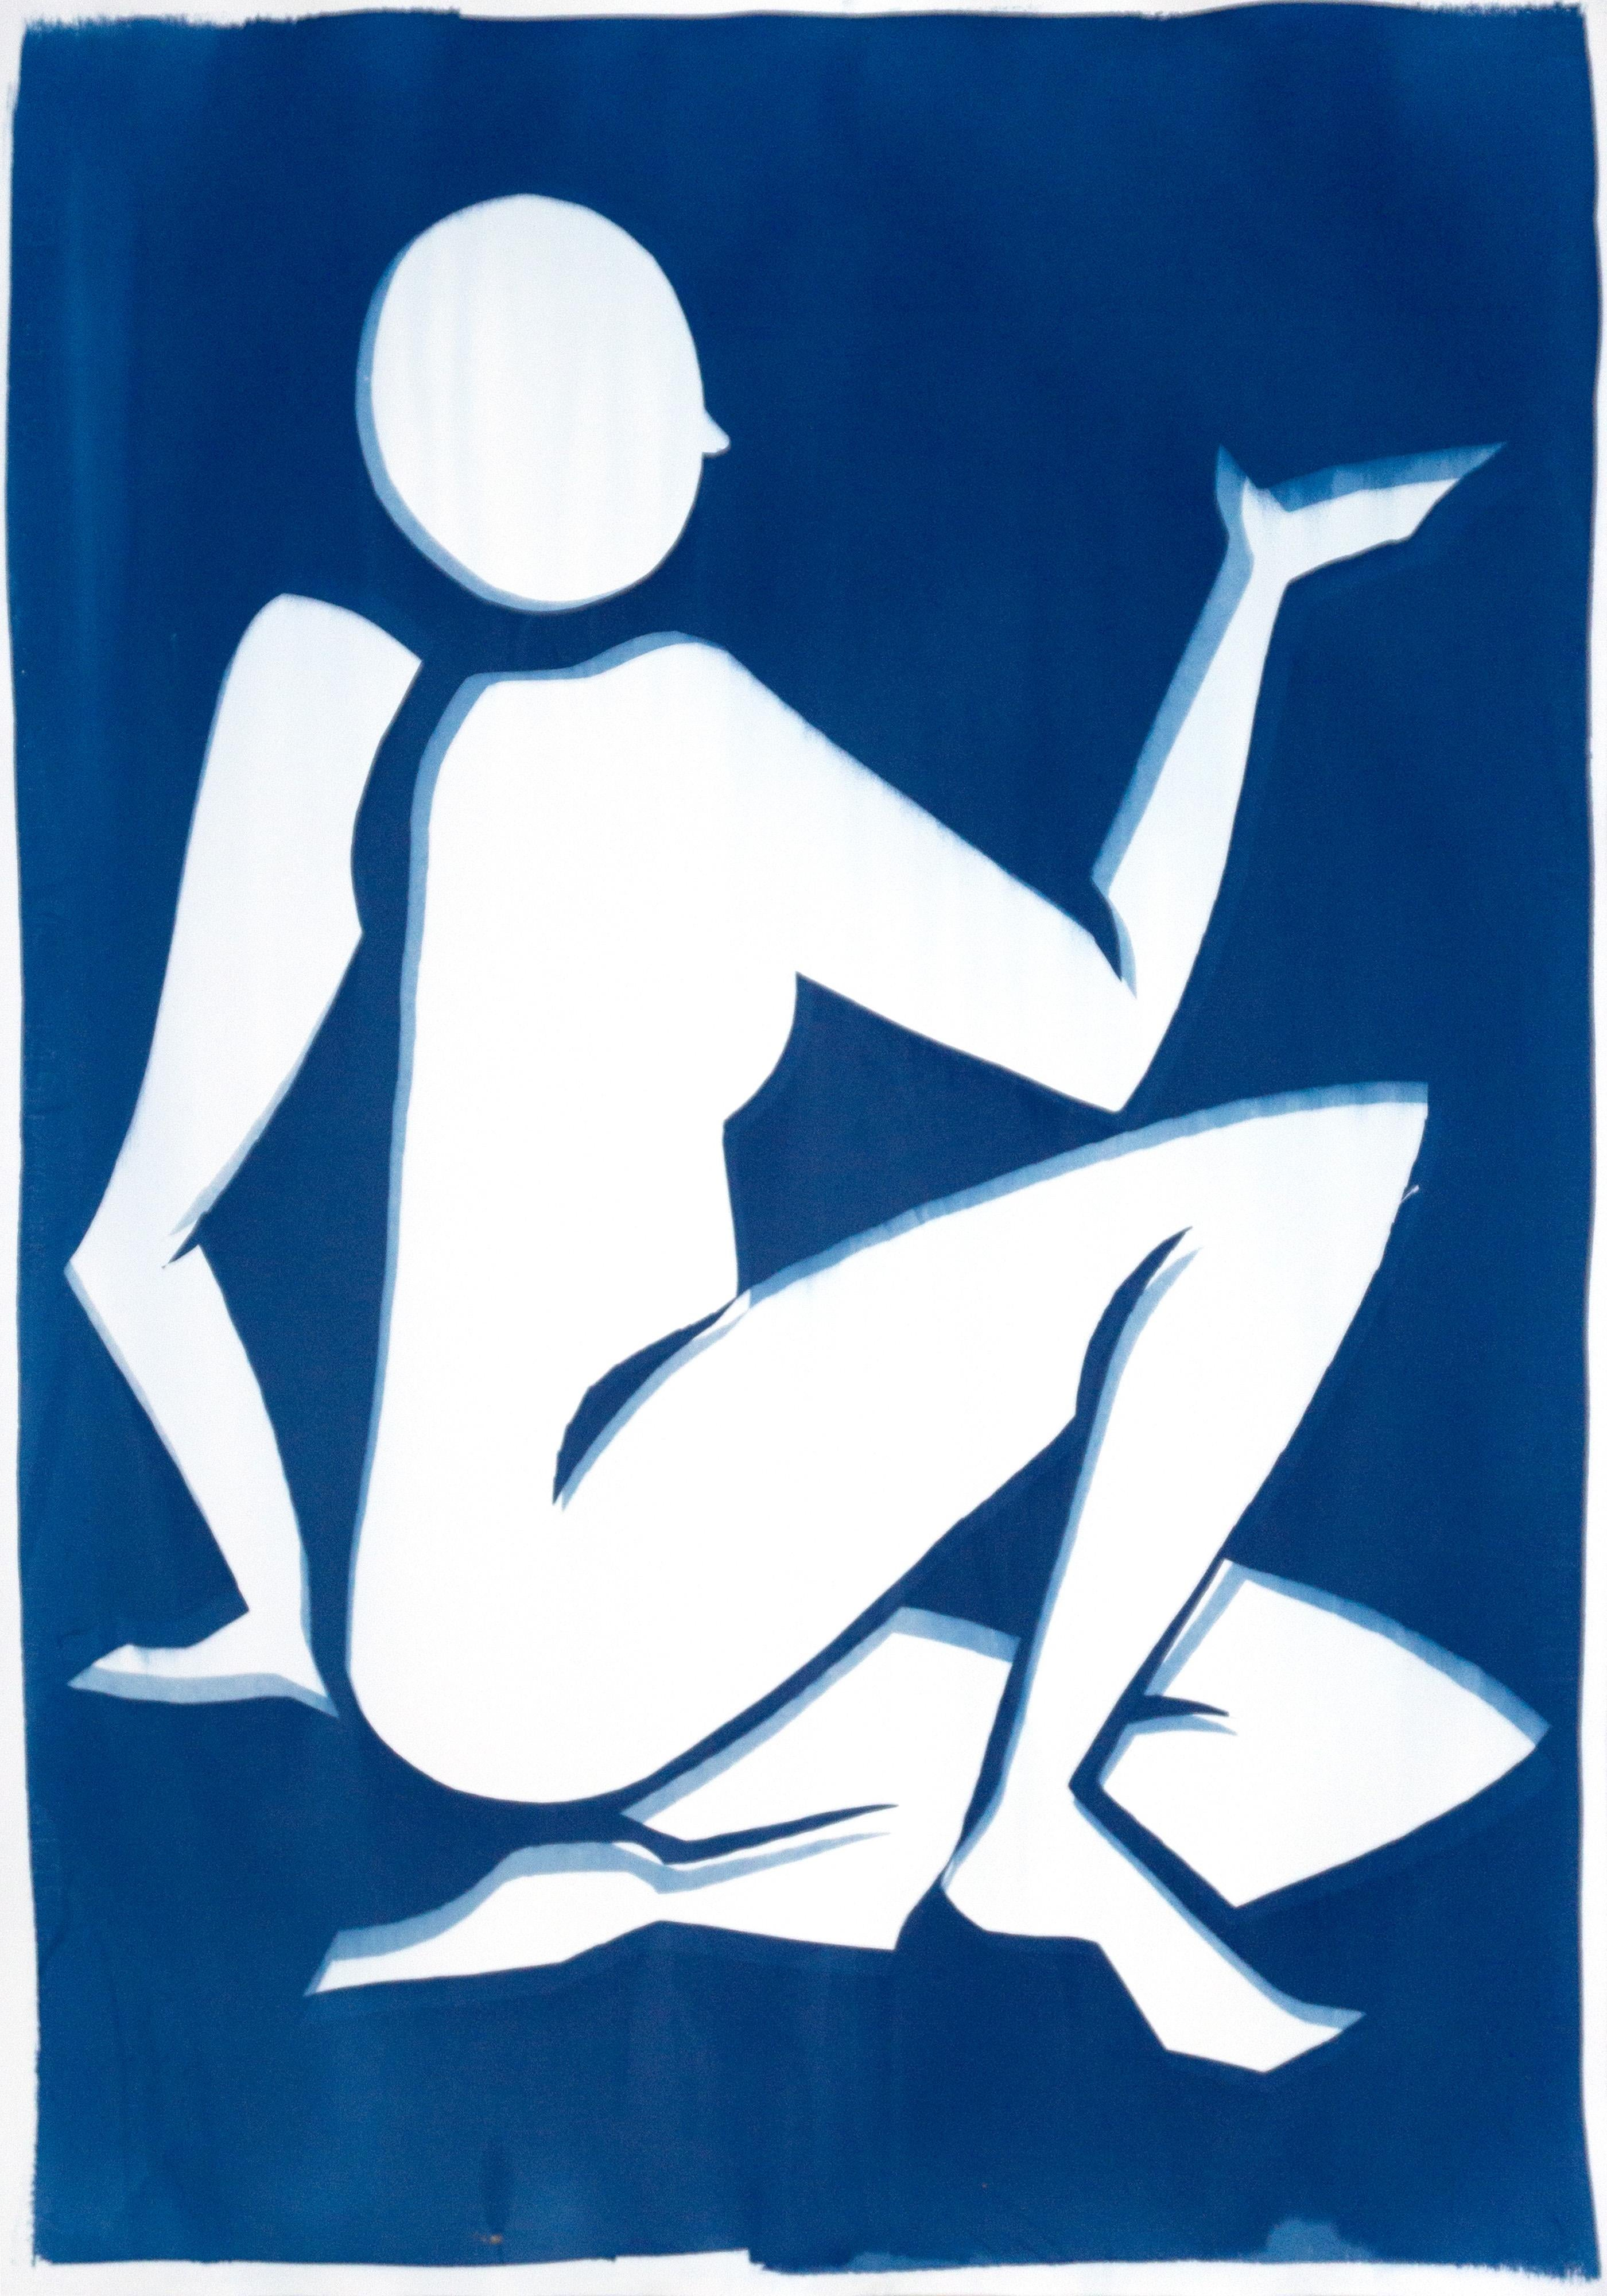 Blue Nude Matisse Inspiration, Cutout Cyanotype on Paper, Yves Klein Blue, 2020